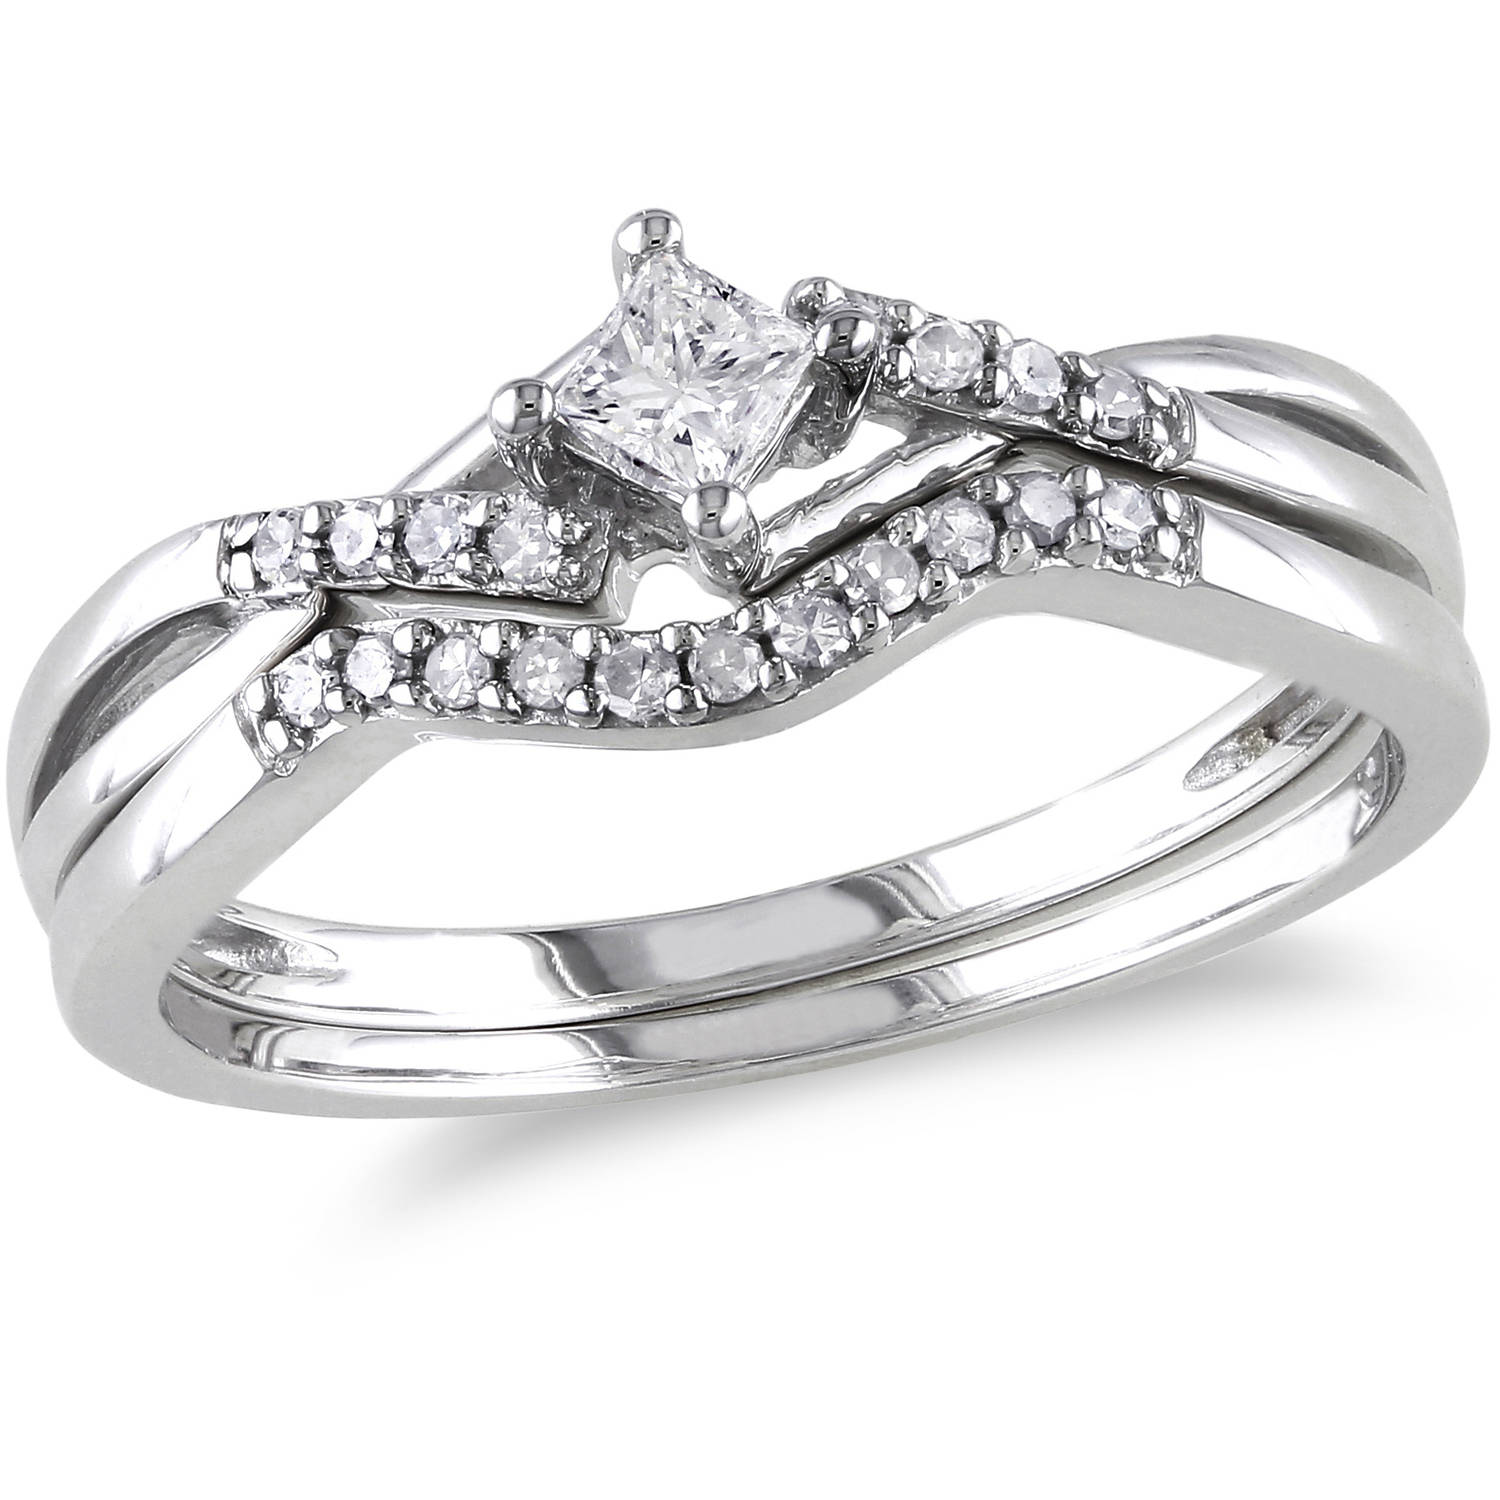 Miabella 1/5 Carat T.W. Princess and Round-Cut Diamond Sterling Silver Bridal Set